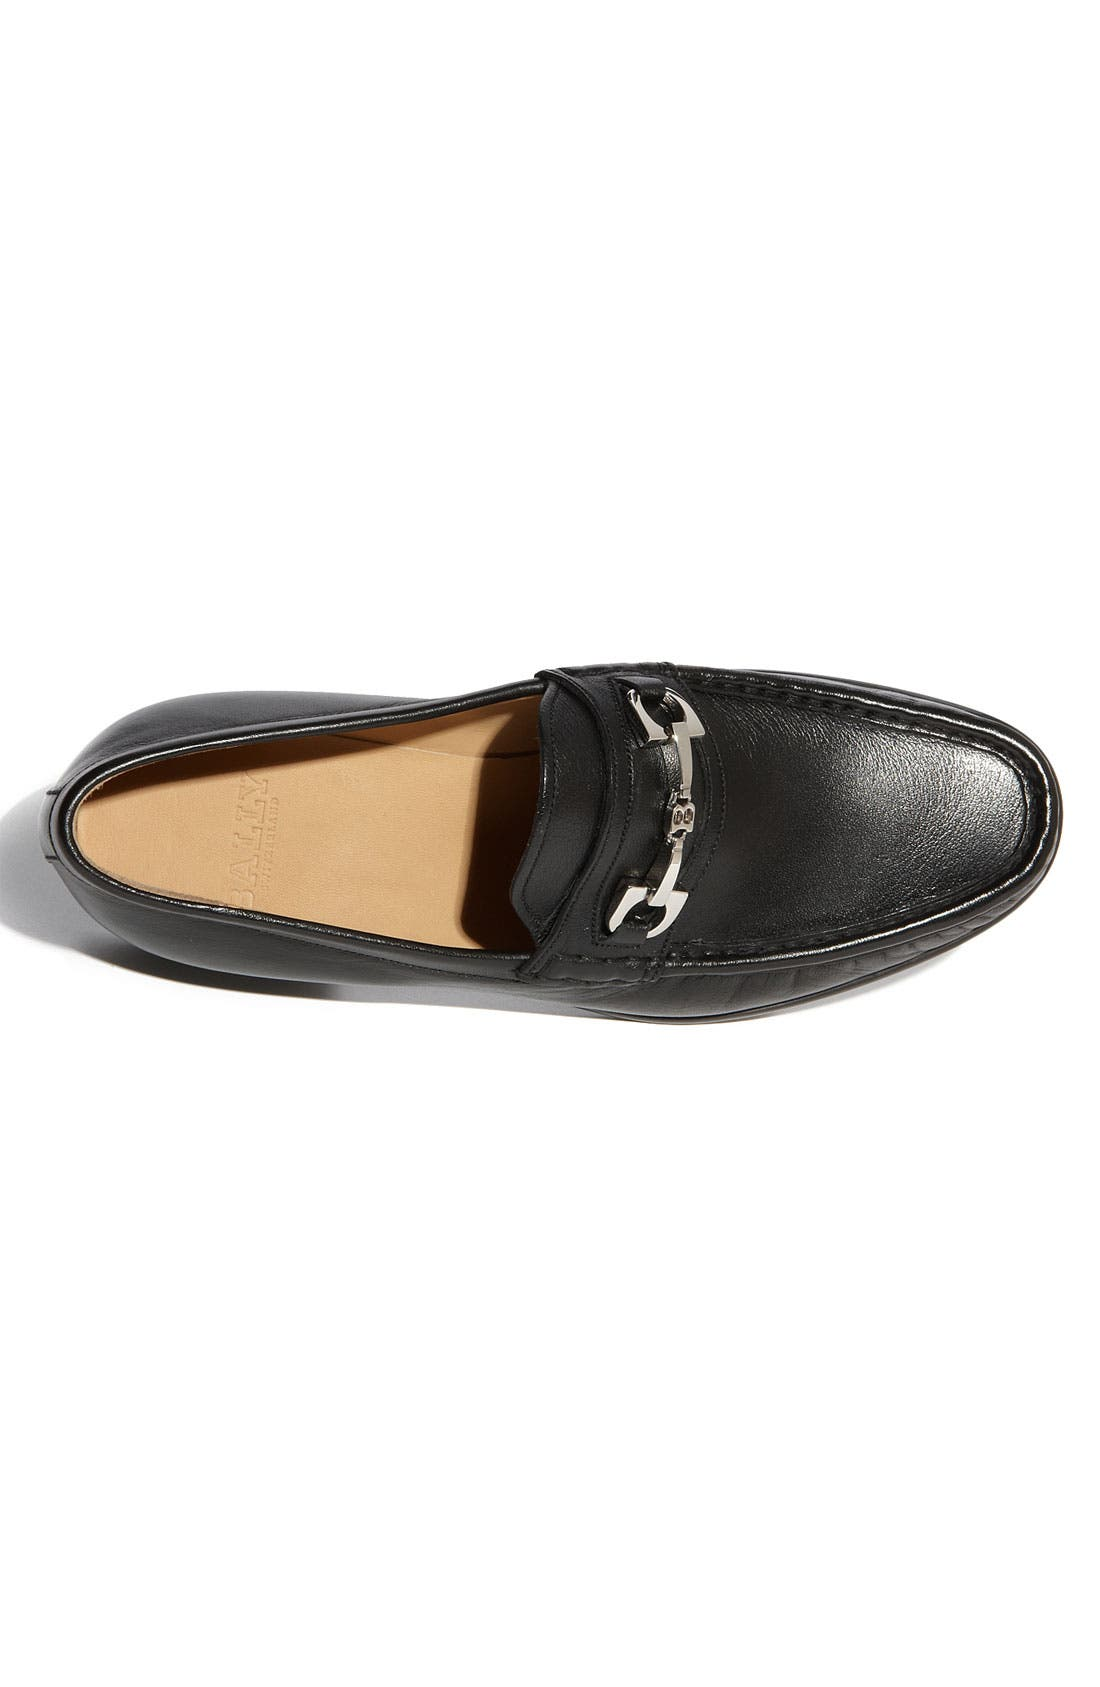 Alternate Image 3  - Bally 'Corman' Loafer